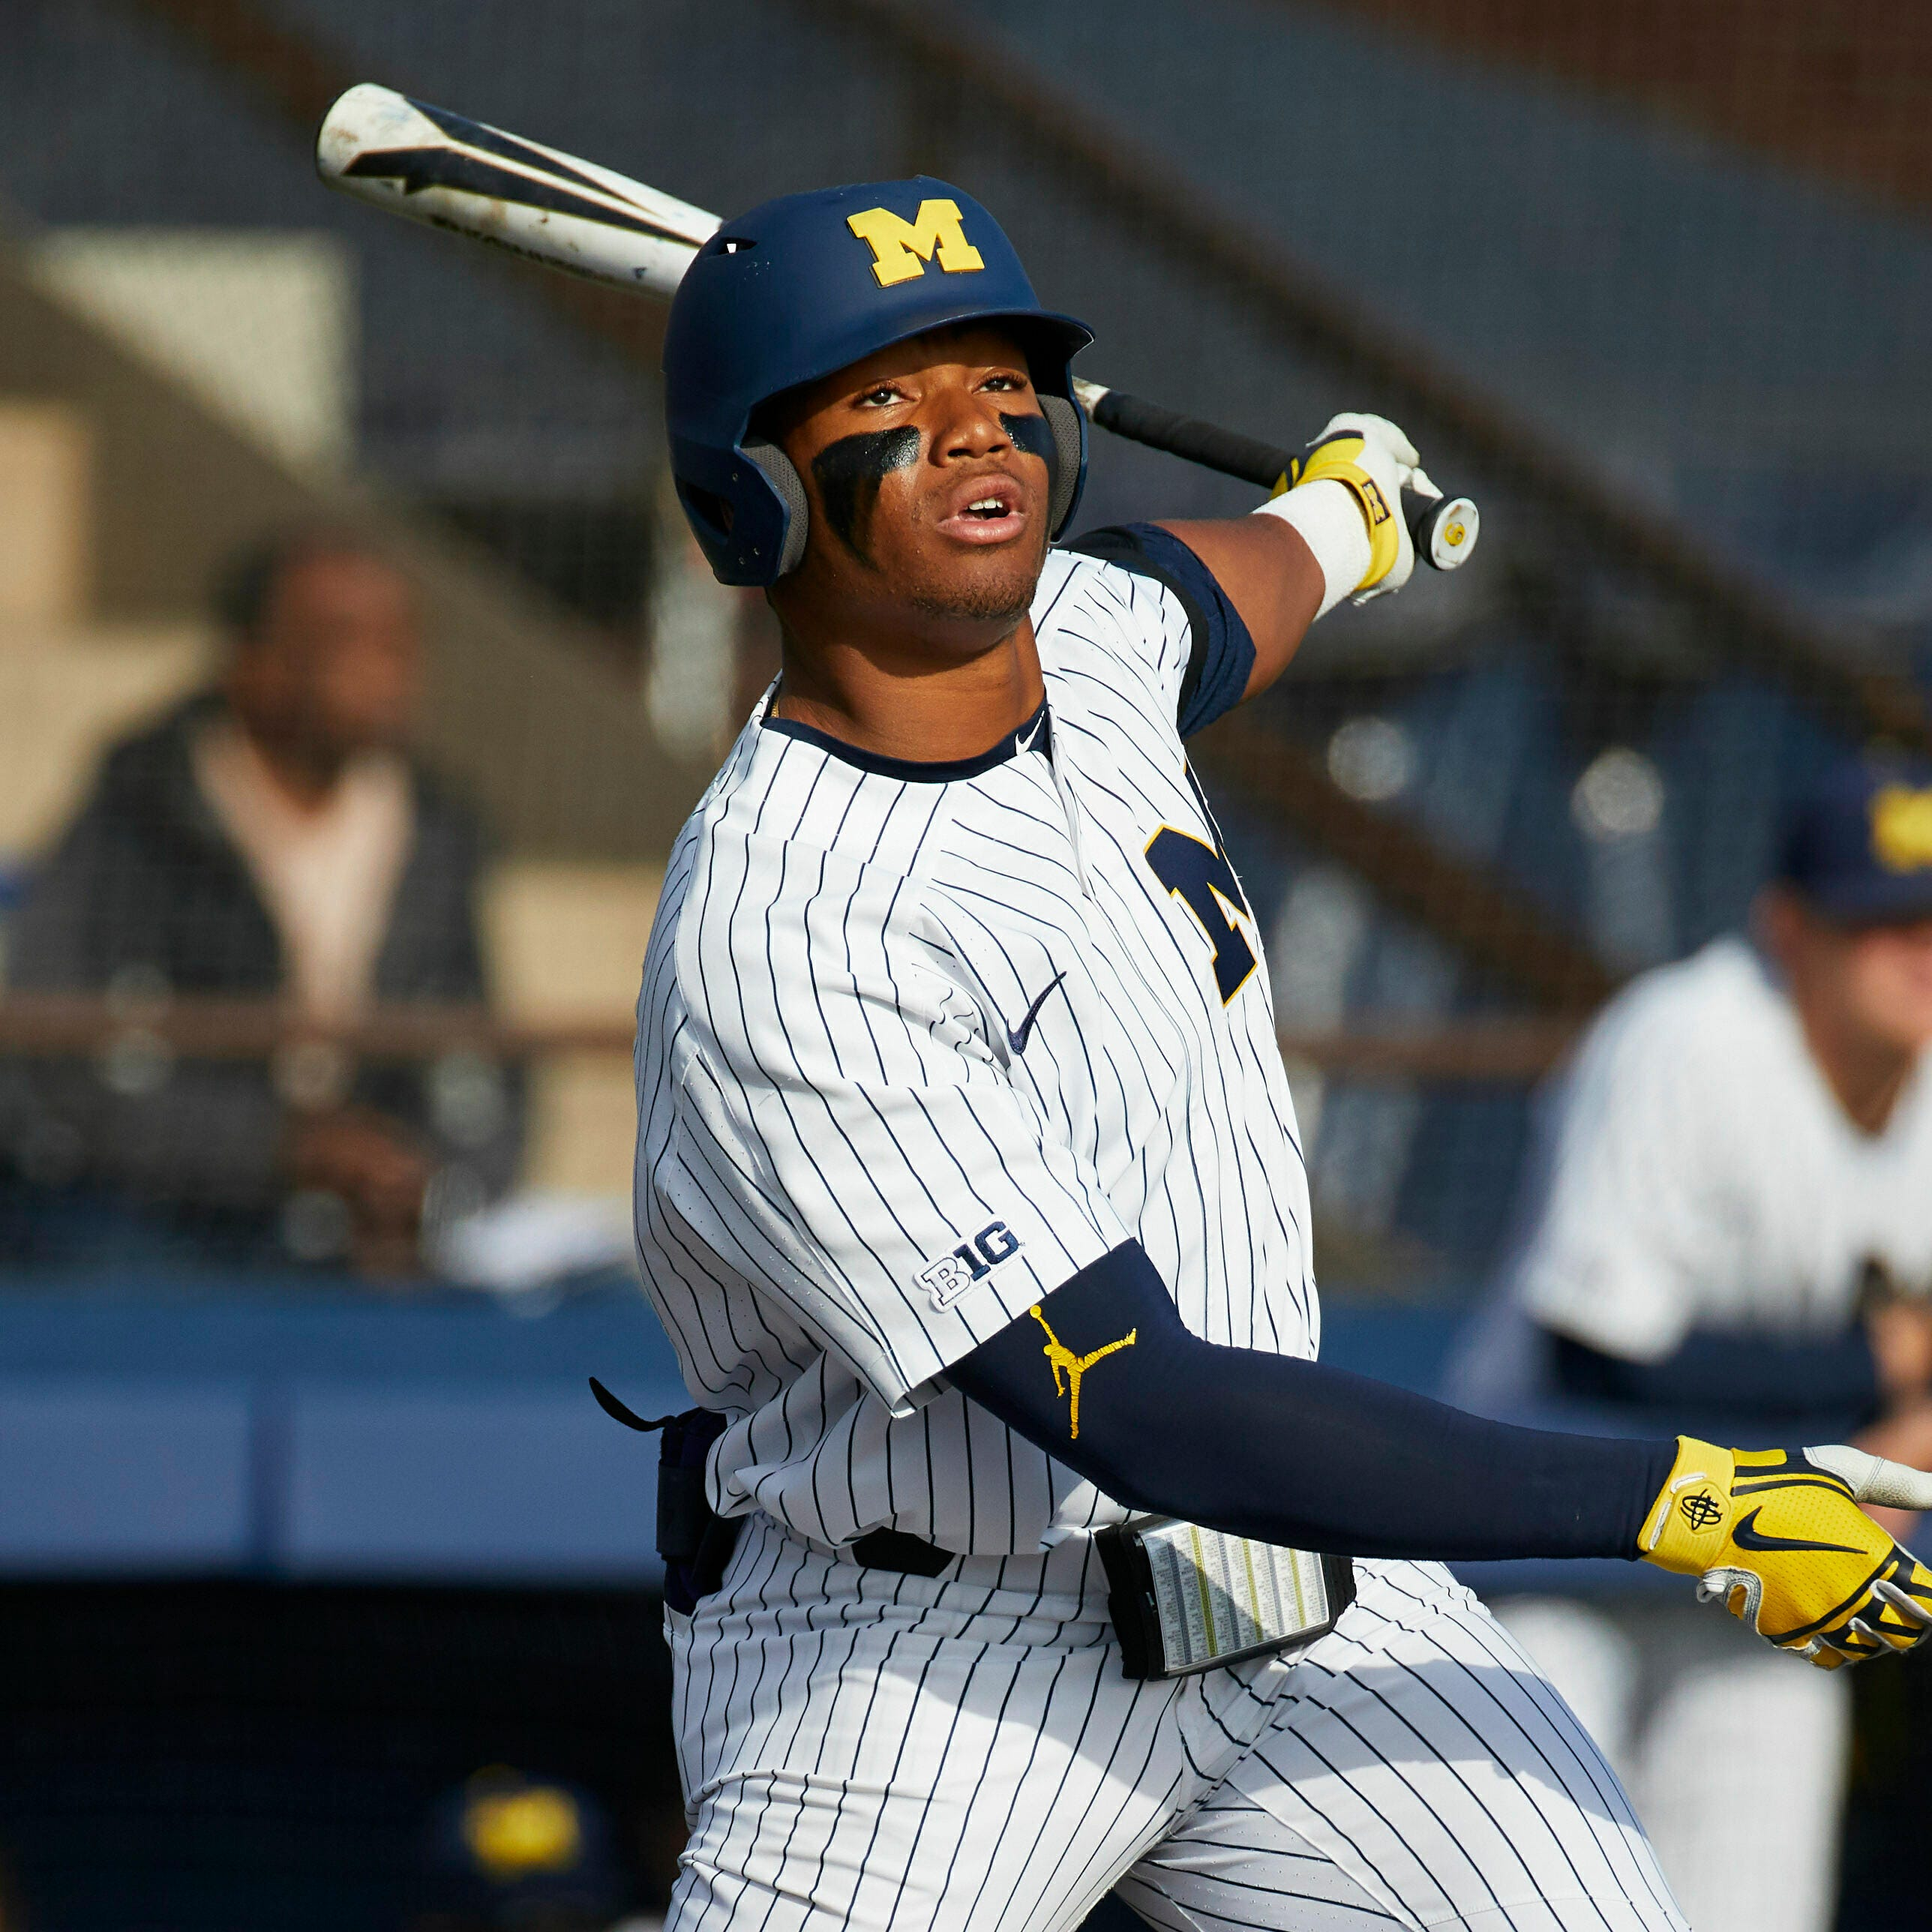 Michigan baseball ousted by Nebraska in Big Ten tournament semis